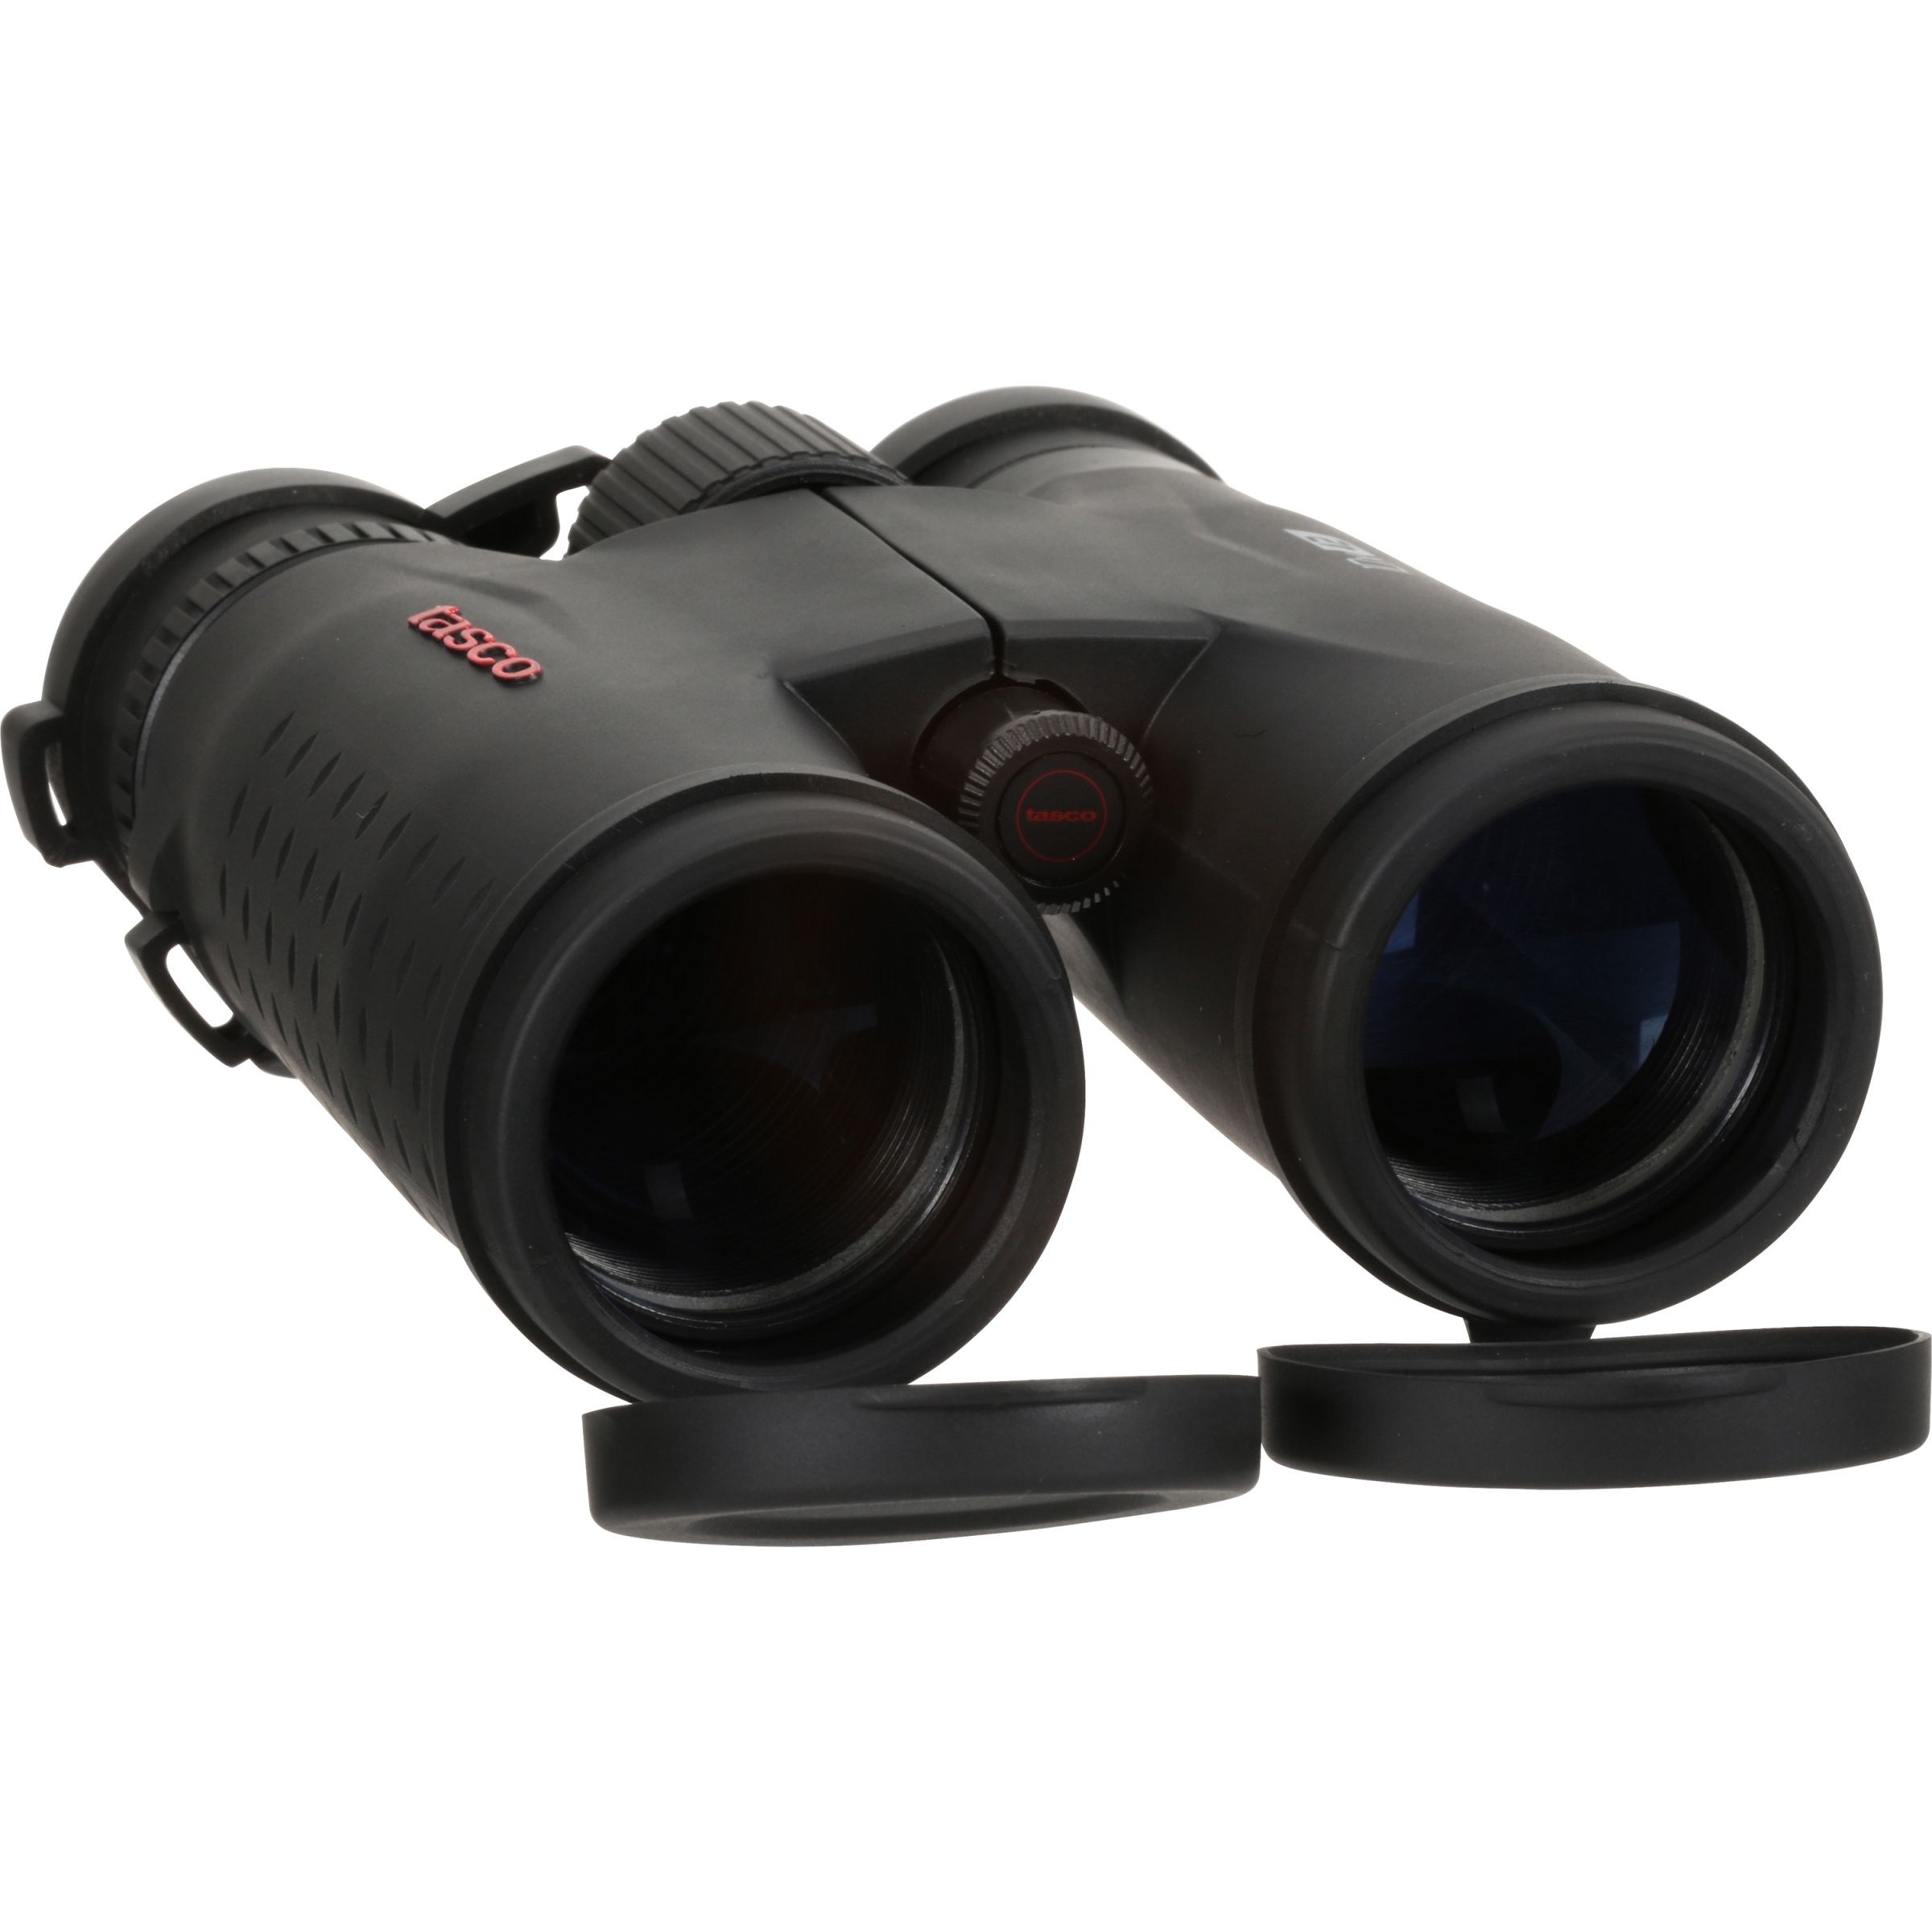 Tasco Essentials Binoculars 10x42mm Roof Prism Mc Black Binoculars Tasco Essentials Roofing Equipment Binoculars Hunting Gear